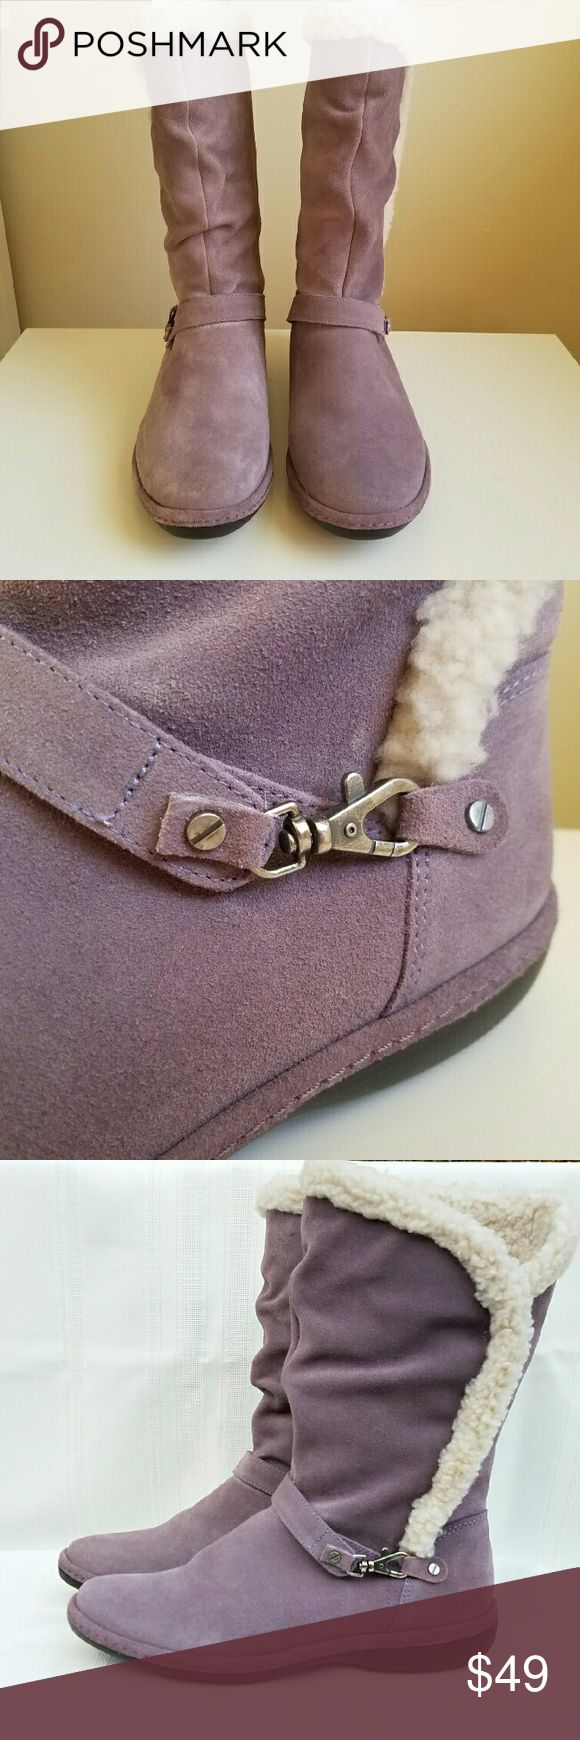 Land?s end winter suede boots Land's End lilac Sherpa lined boots. Slouchy look. Hardly worn. Great with jeans or leggings and scarves and coats! Very warm and comfortable! Excellent condition. Lands' End Shoes Winter & Rain Boots